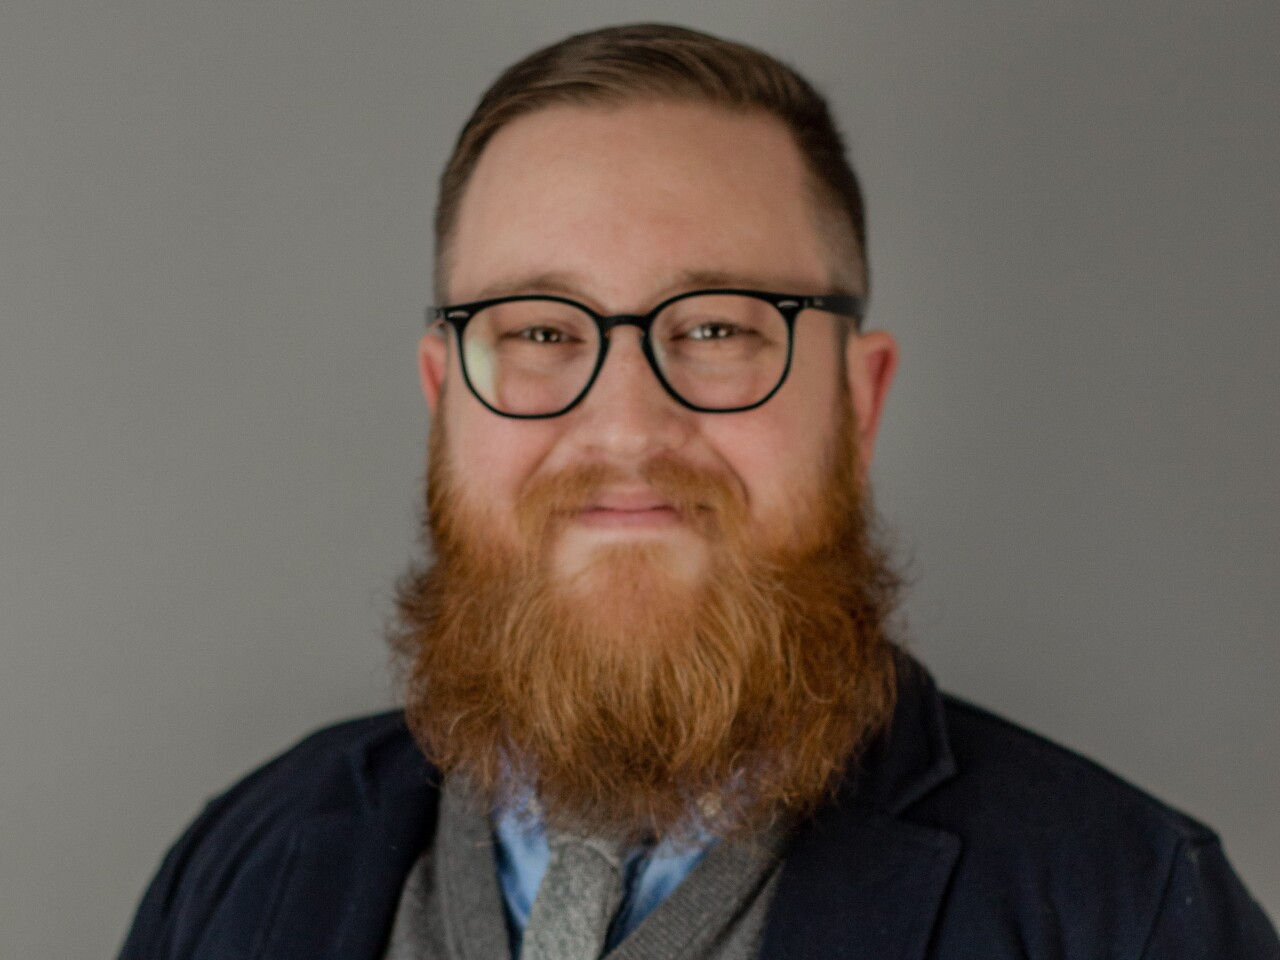 Justin Tucker is smiling in this portrait. He has a full, red beard and mustache and short-cropped hair. He's wearing glasses, a blue shirt and a gray tie with a gray sweater and dark blazer.